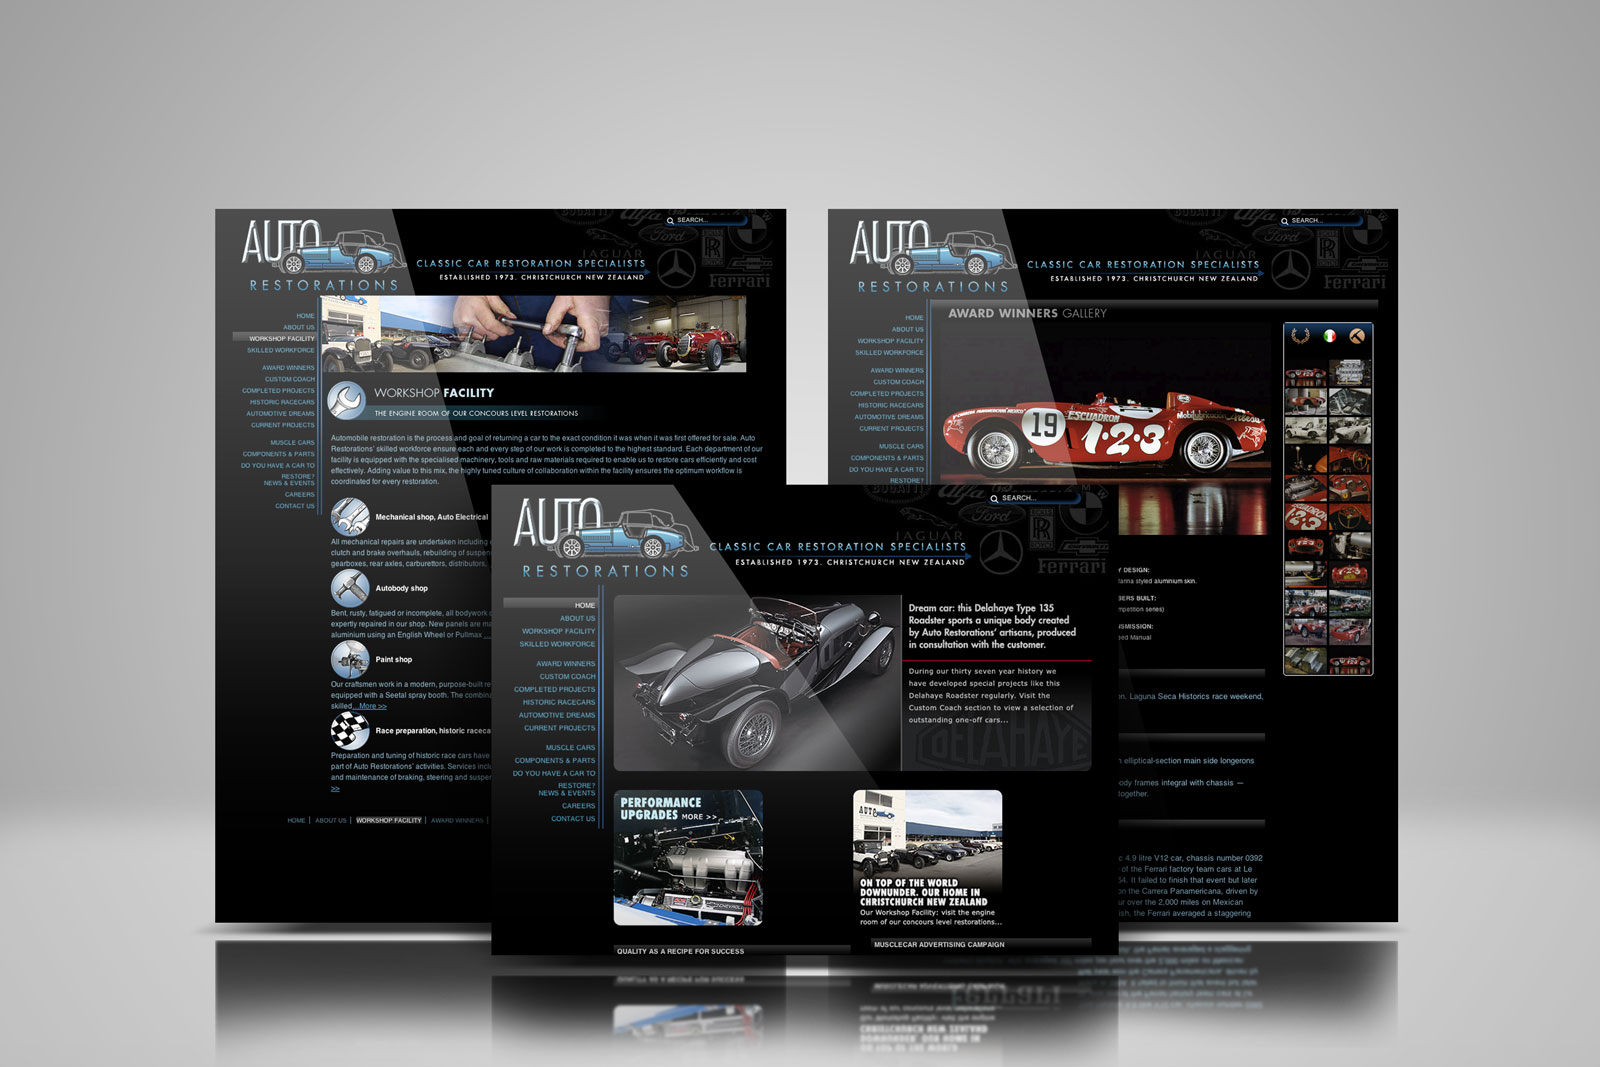 Auto Restorations web design showcase, three pages from the site displayed in an overlapping symmetrical composition. Rebrand for growth. Brands for New Zealand companies, Christchurch, New Zealand.